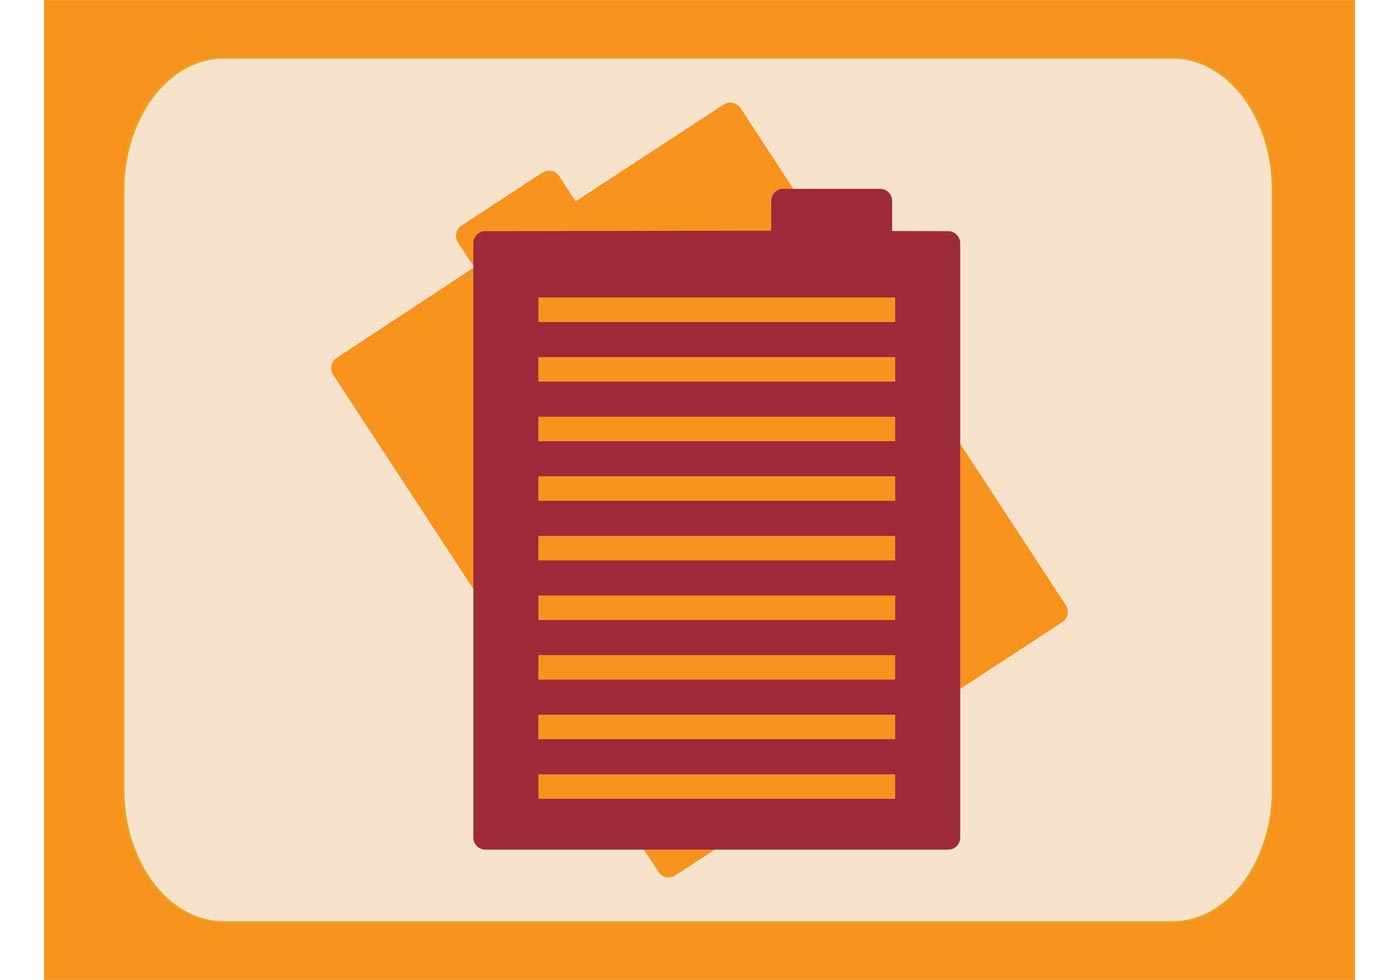 document icon free vector art 29473 free downloads